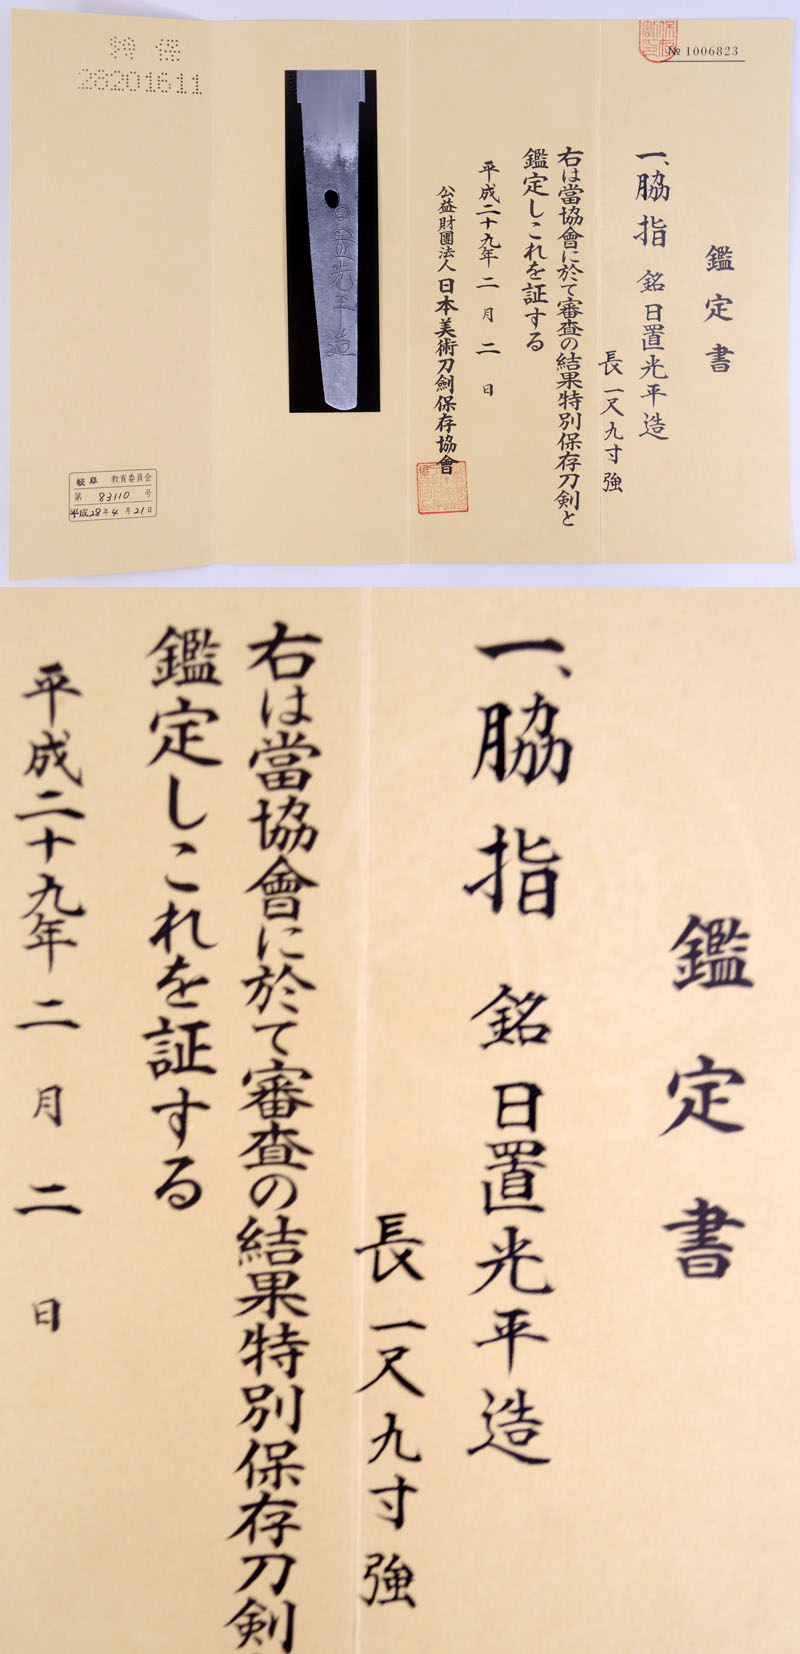 日置光平造 Picture of Certificate